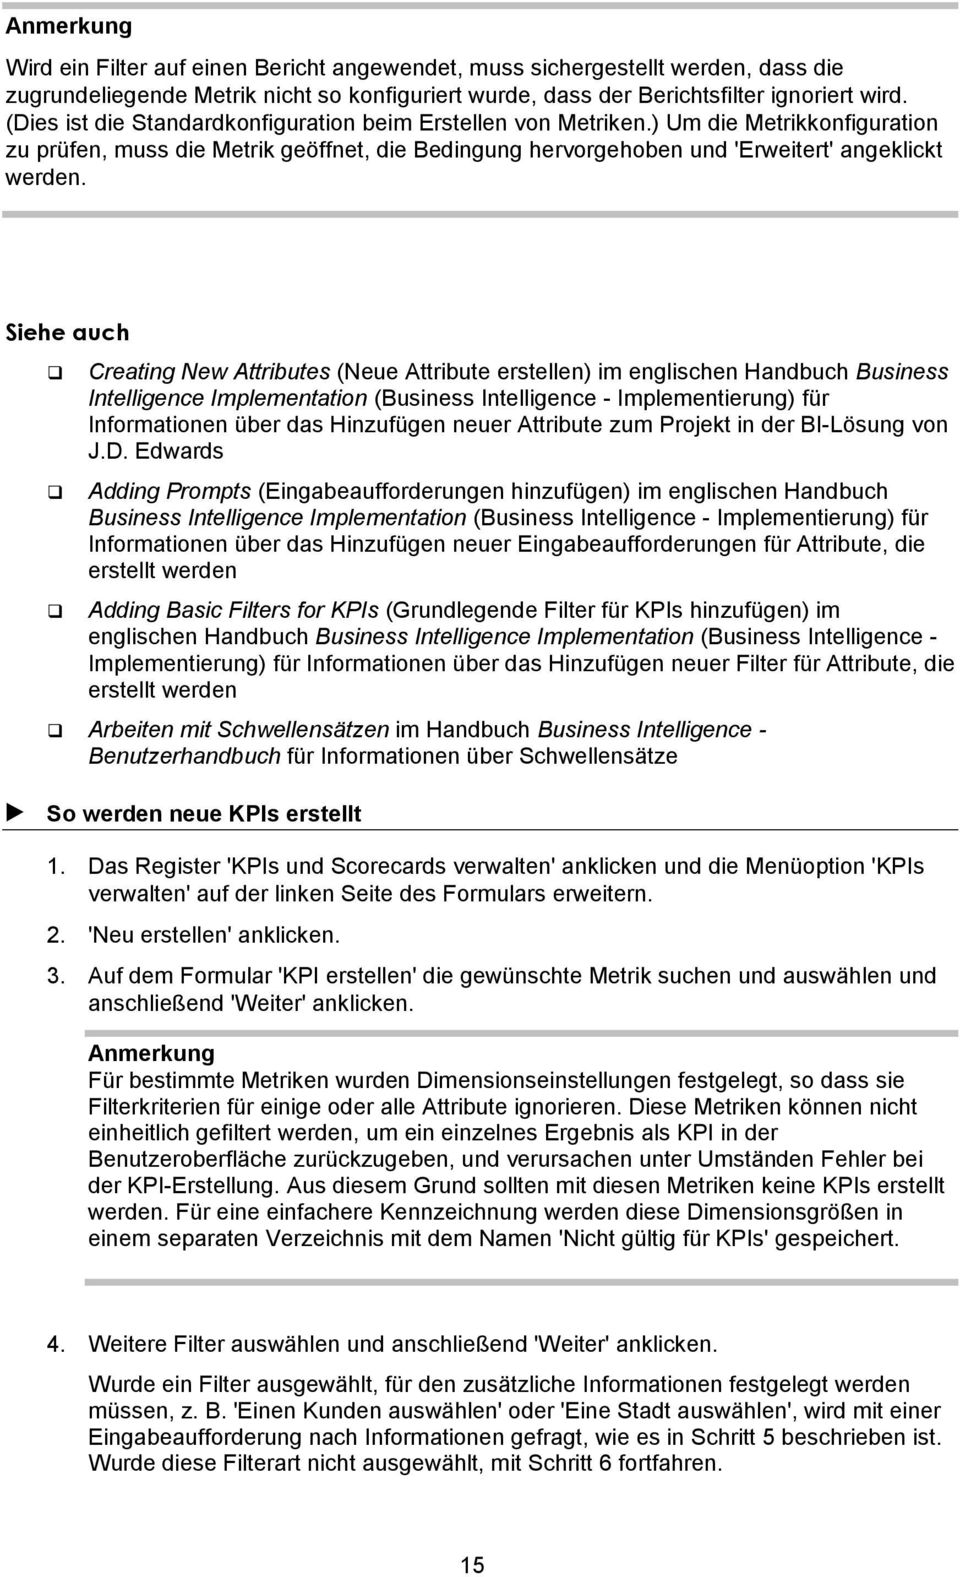 Siehe auch Creating New Attributes (Neue Attribute erstellen) im englischen Handbuch Business Intelligence Implementation (Business Intelligence - Implementierung) für Informationen über das